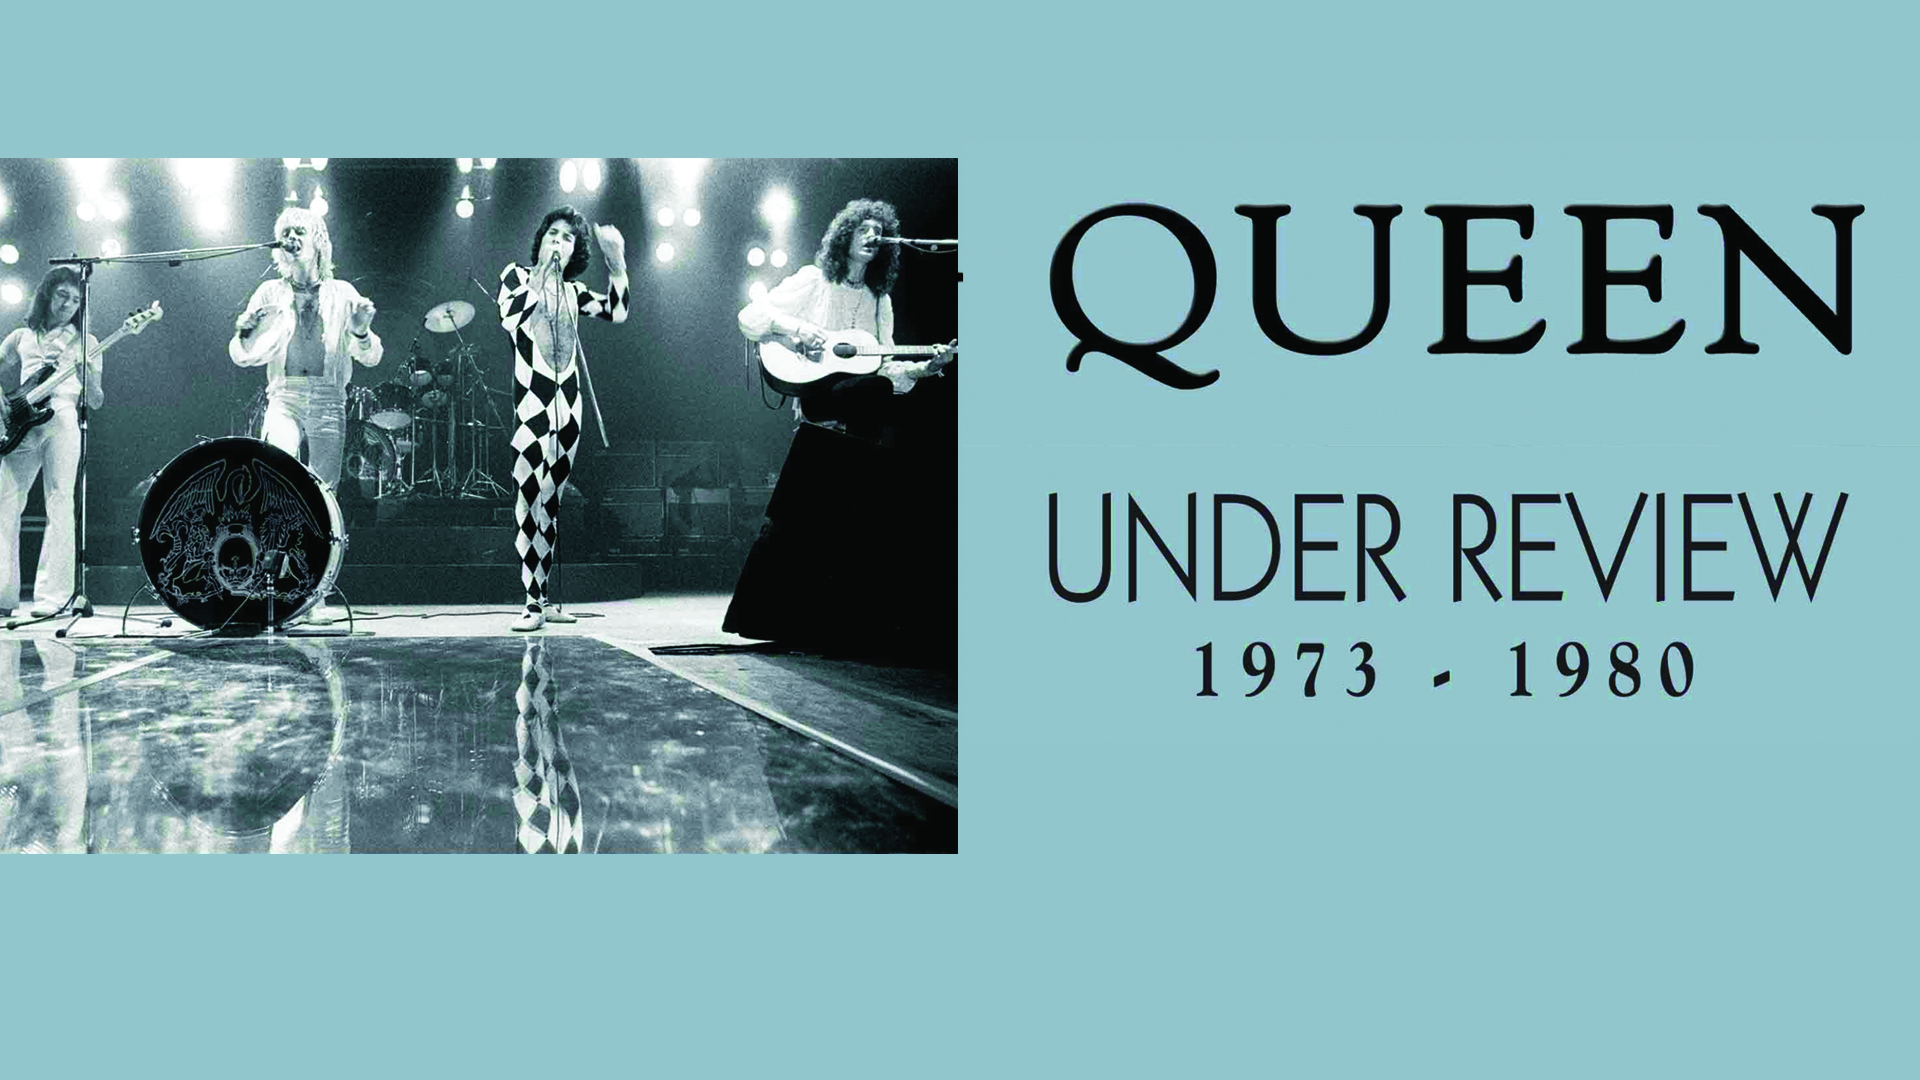 Queen - Under Review 1973-1980